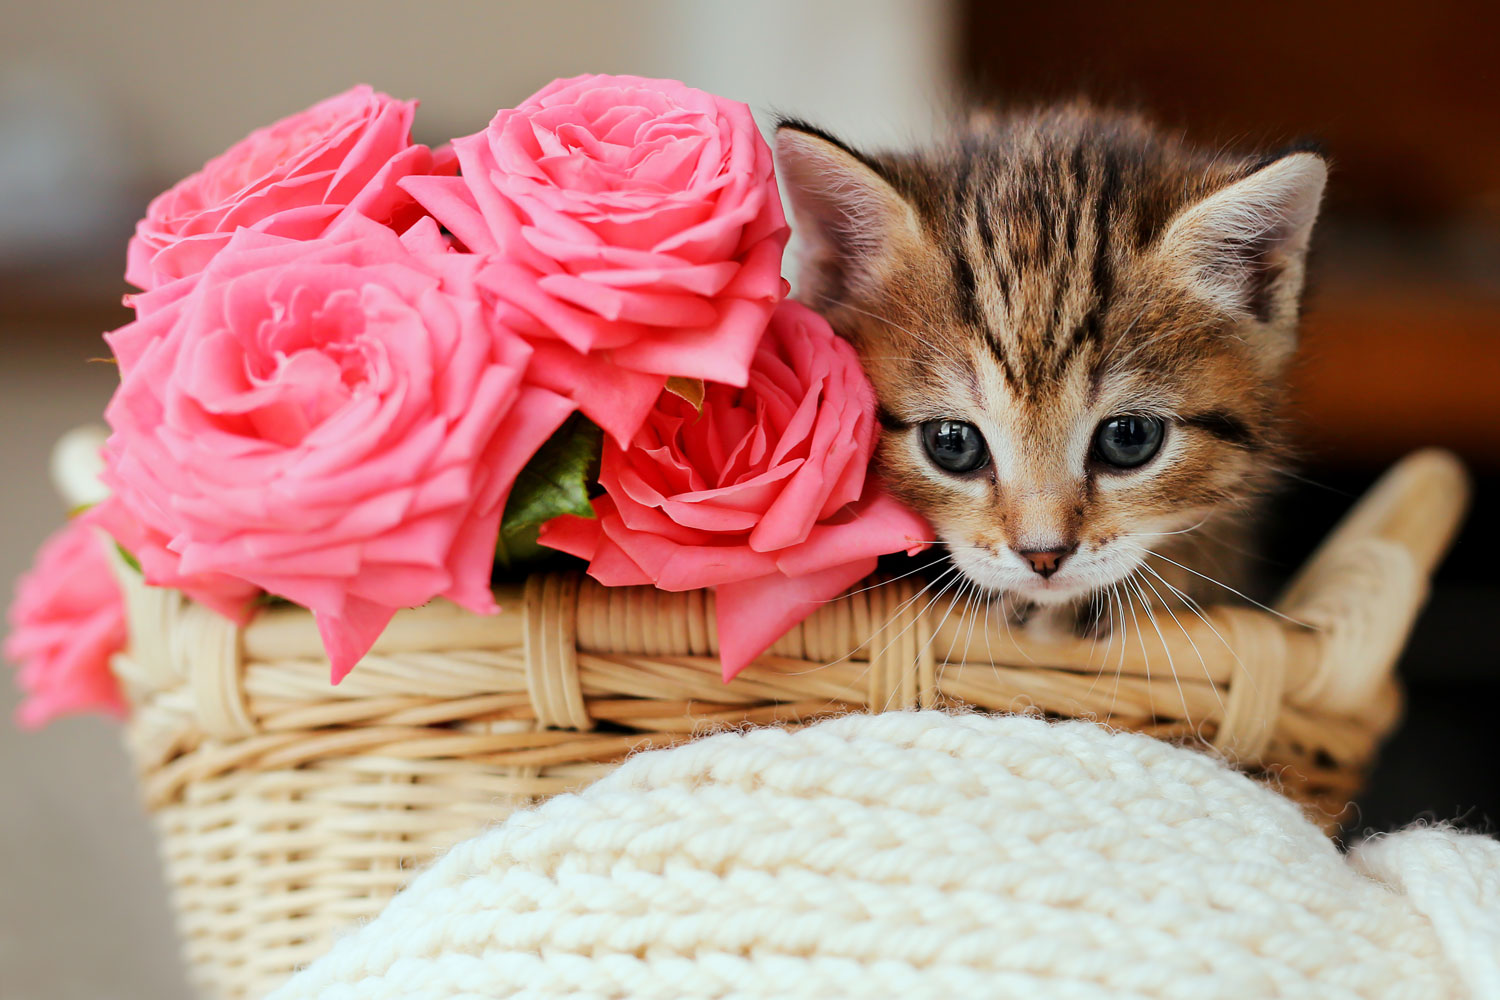 A small little kitten sitting on a small wooden basket next to pink roses